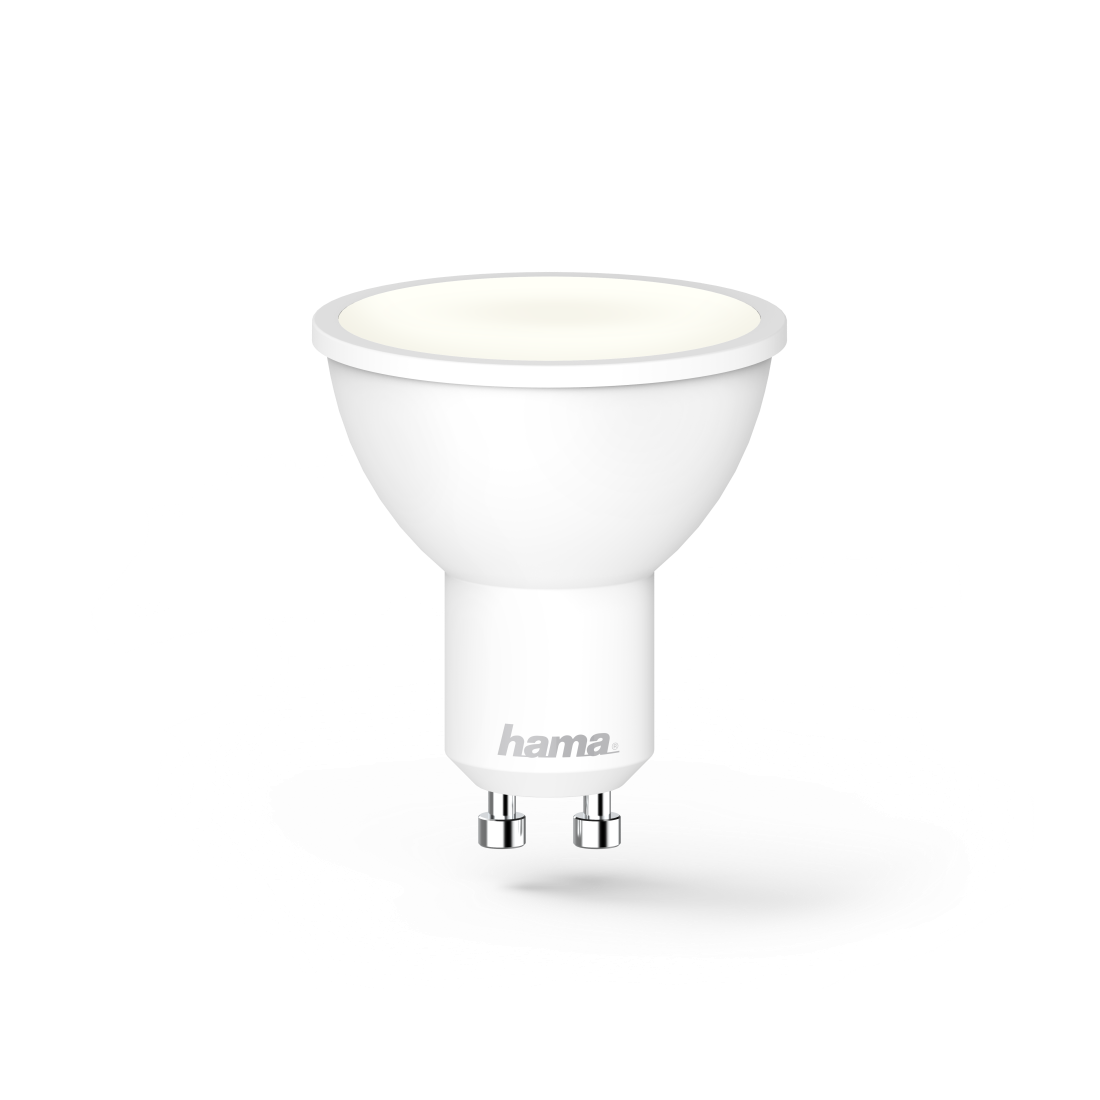 abx2 High-Res Image 2 - Hama, Ampoule LED WiFi, GU10, 4,5 W, RVB, réglable